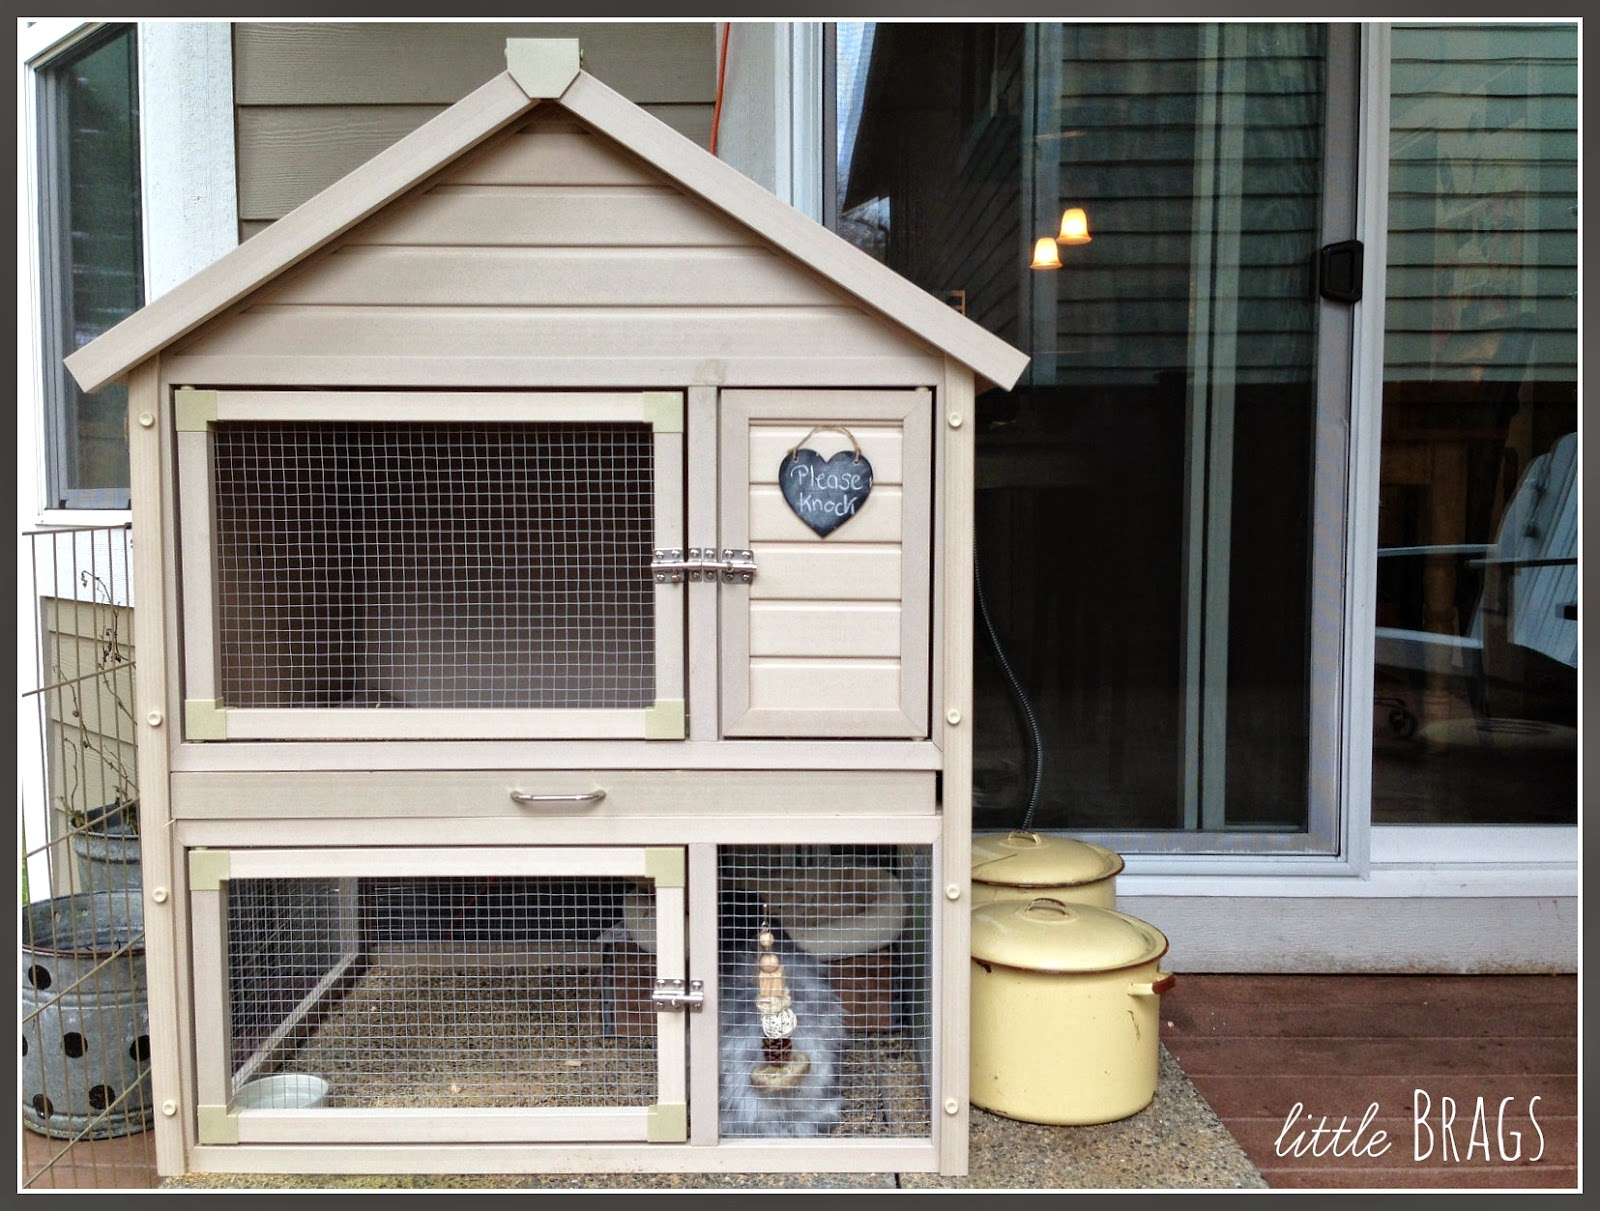 Little brags a lazy sunday and a bunny home tour for Rabbit house images